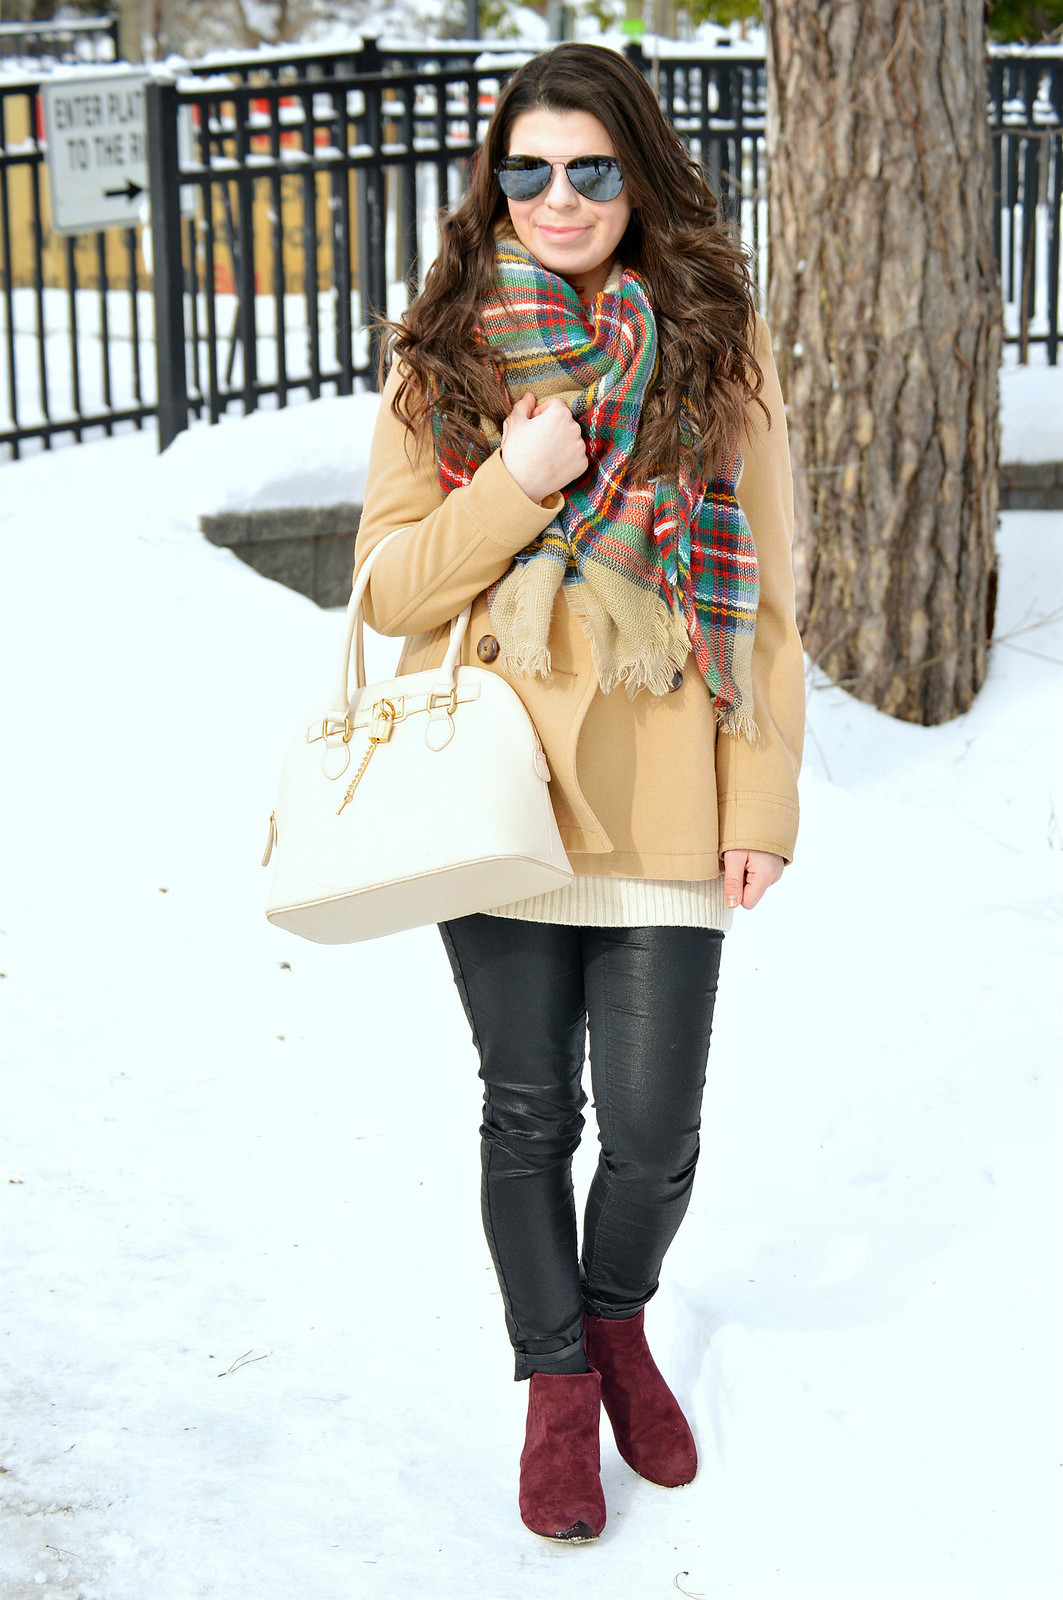 pea coat and scarf